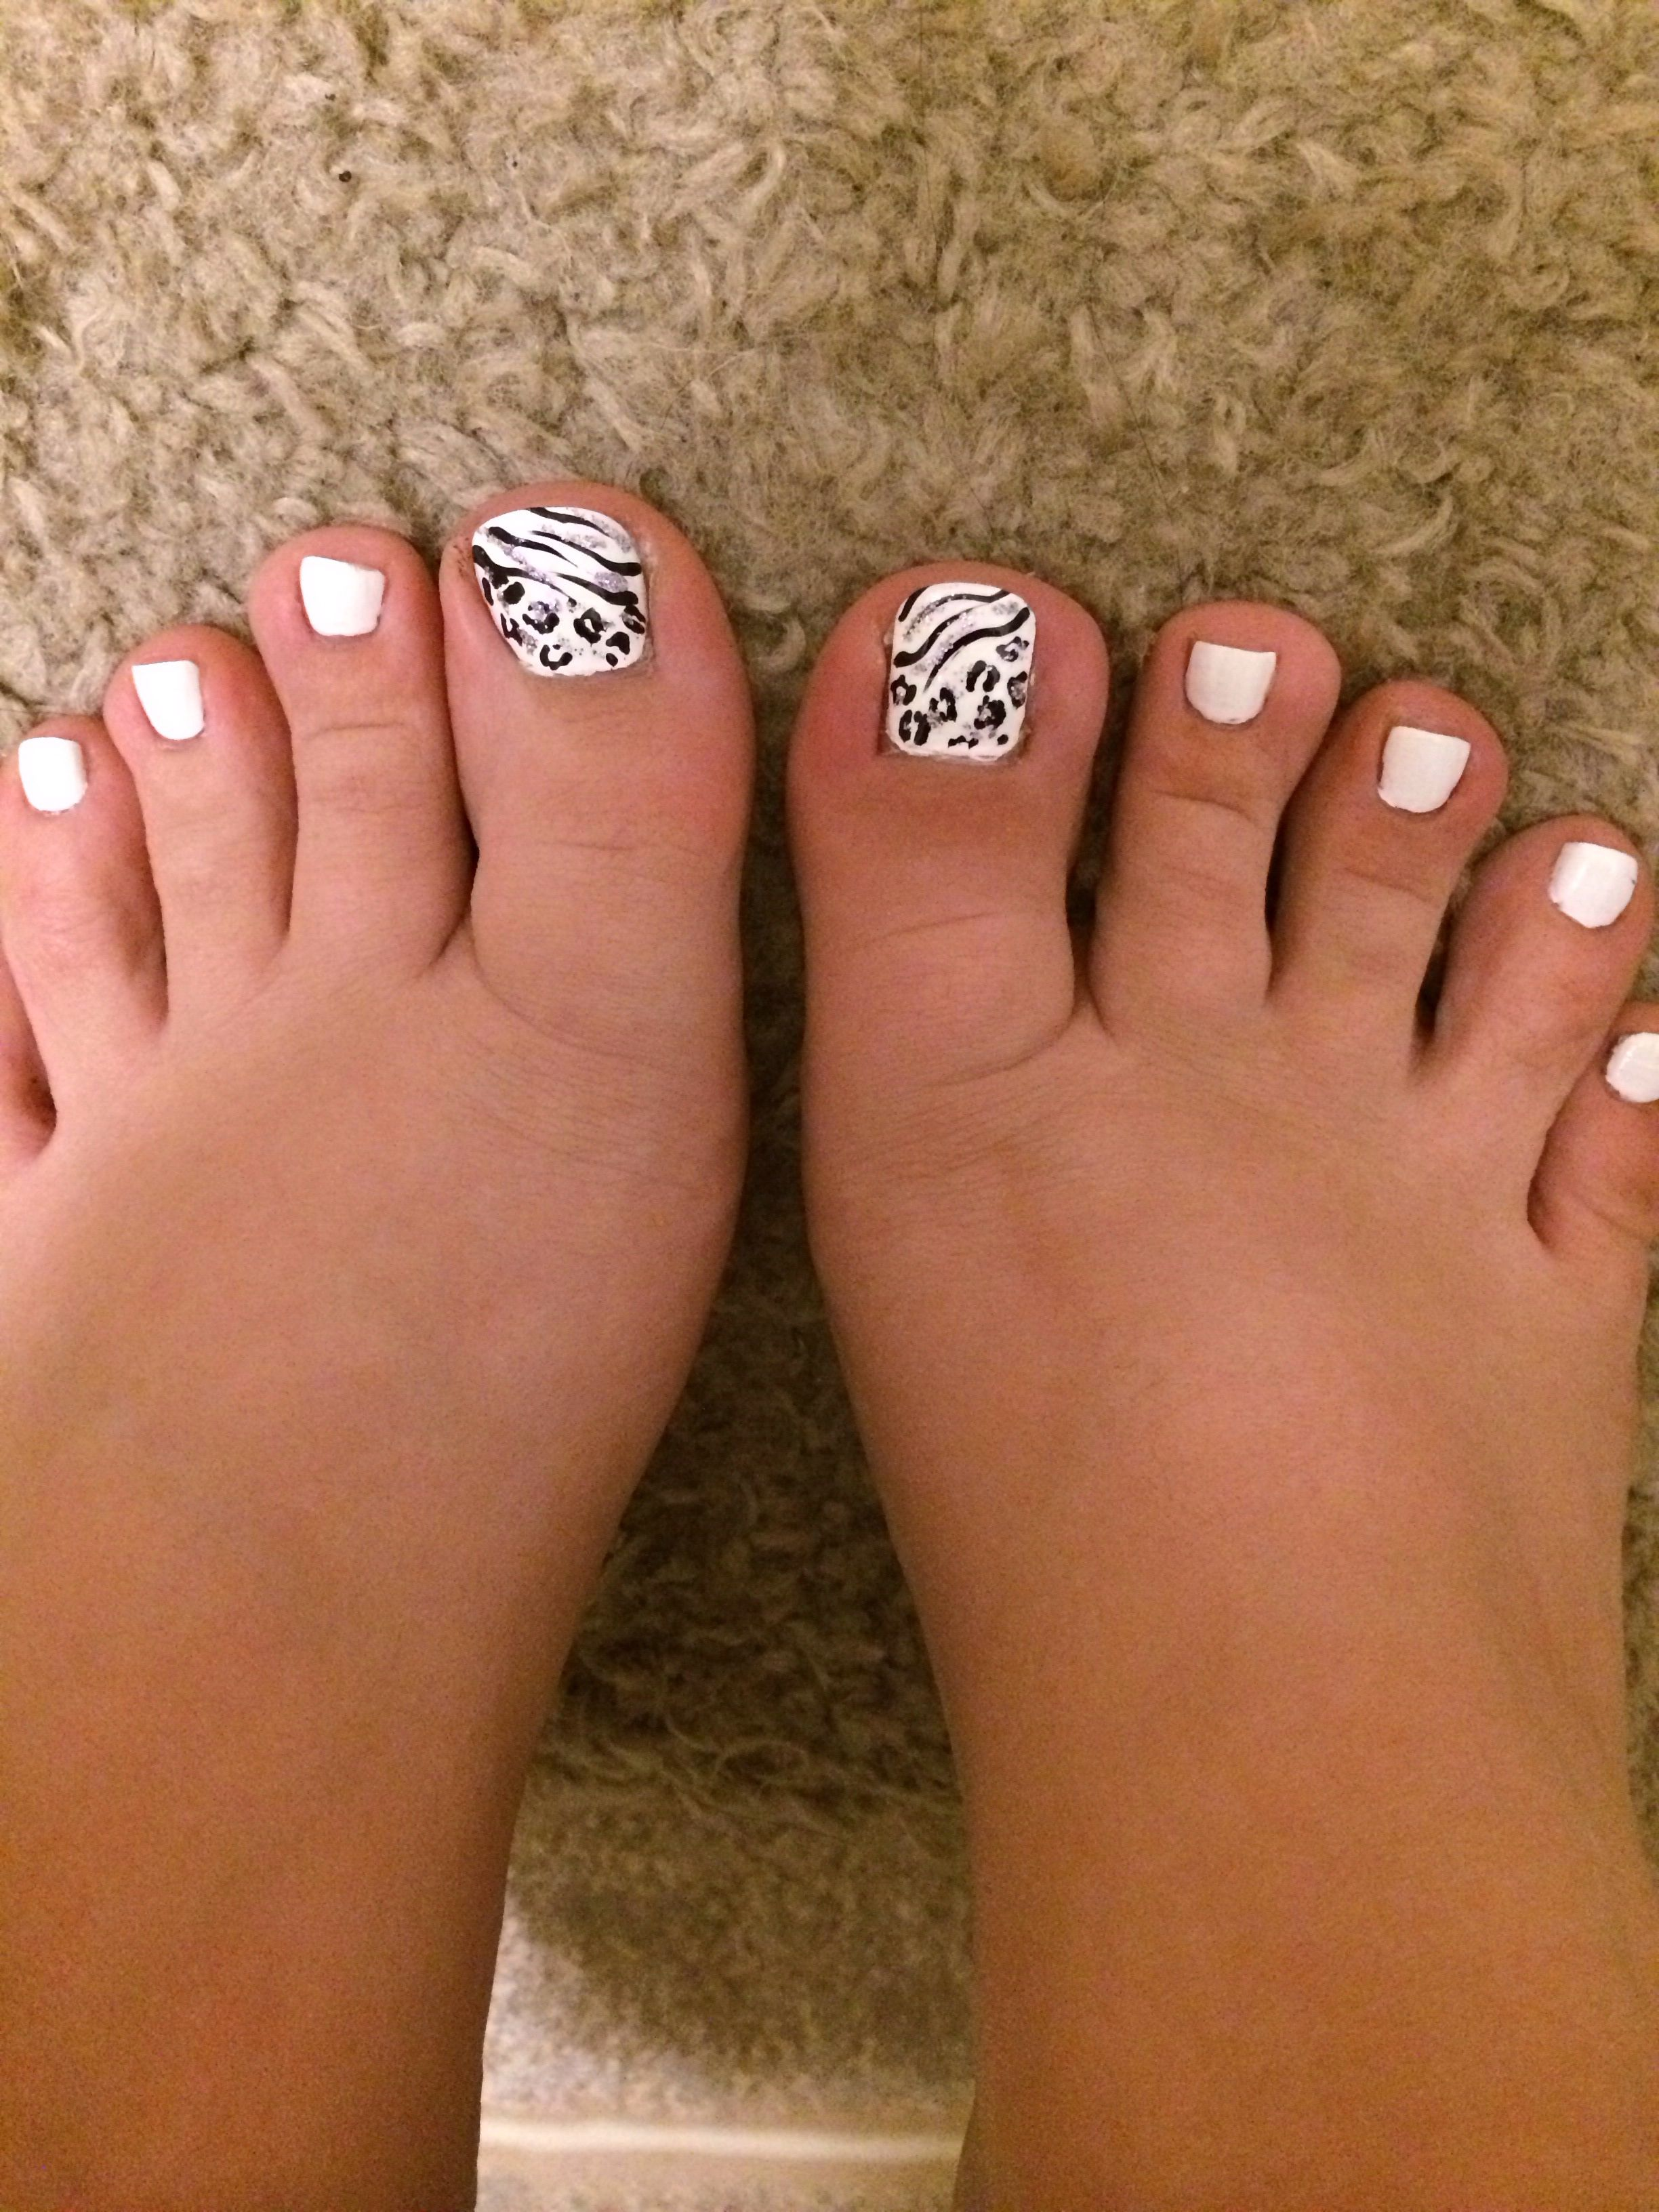 Pedicure Leopard Zebra Animal Print Love Pedicure Designs Toe Nail Designs Pedicure Colors